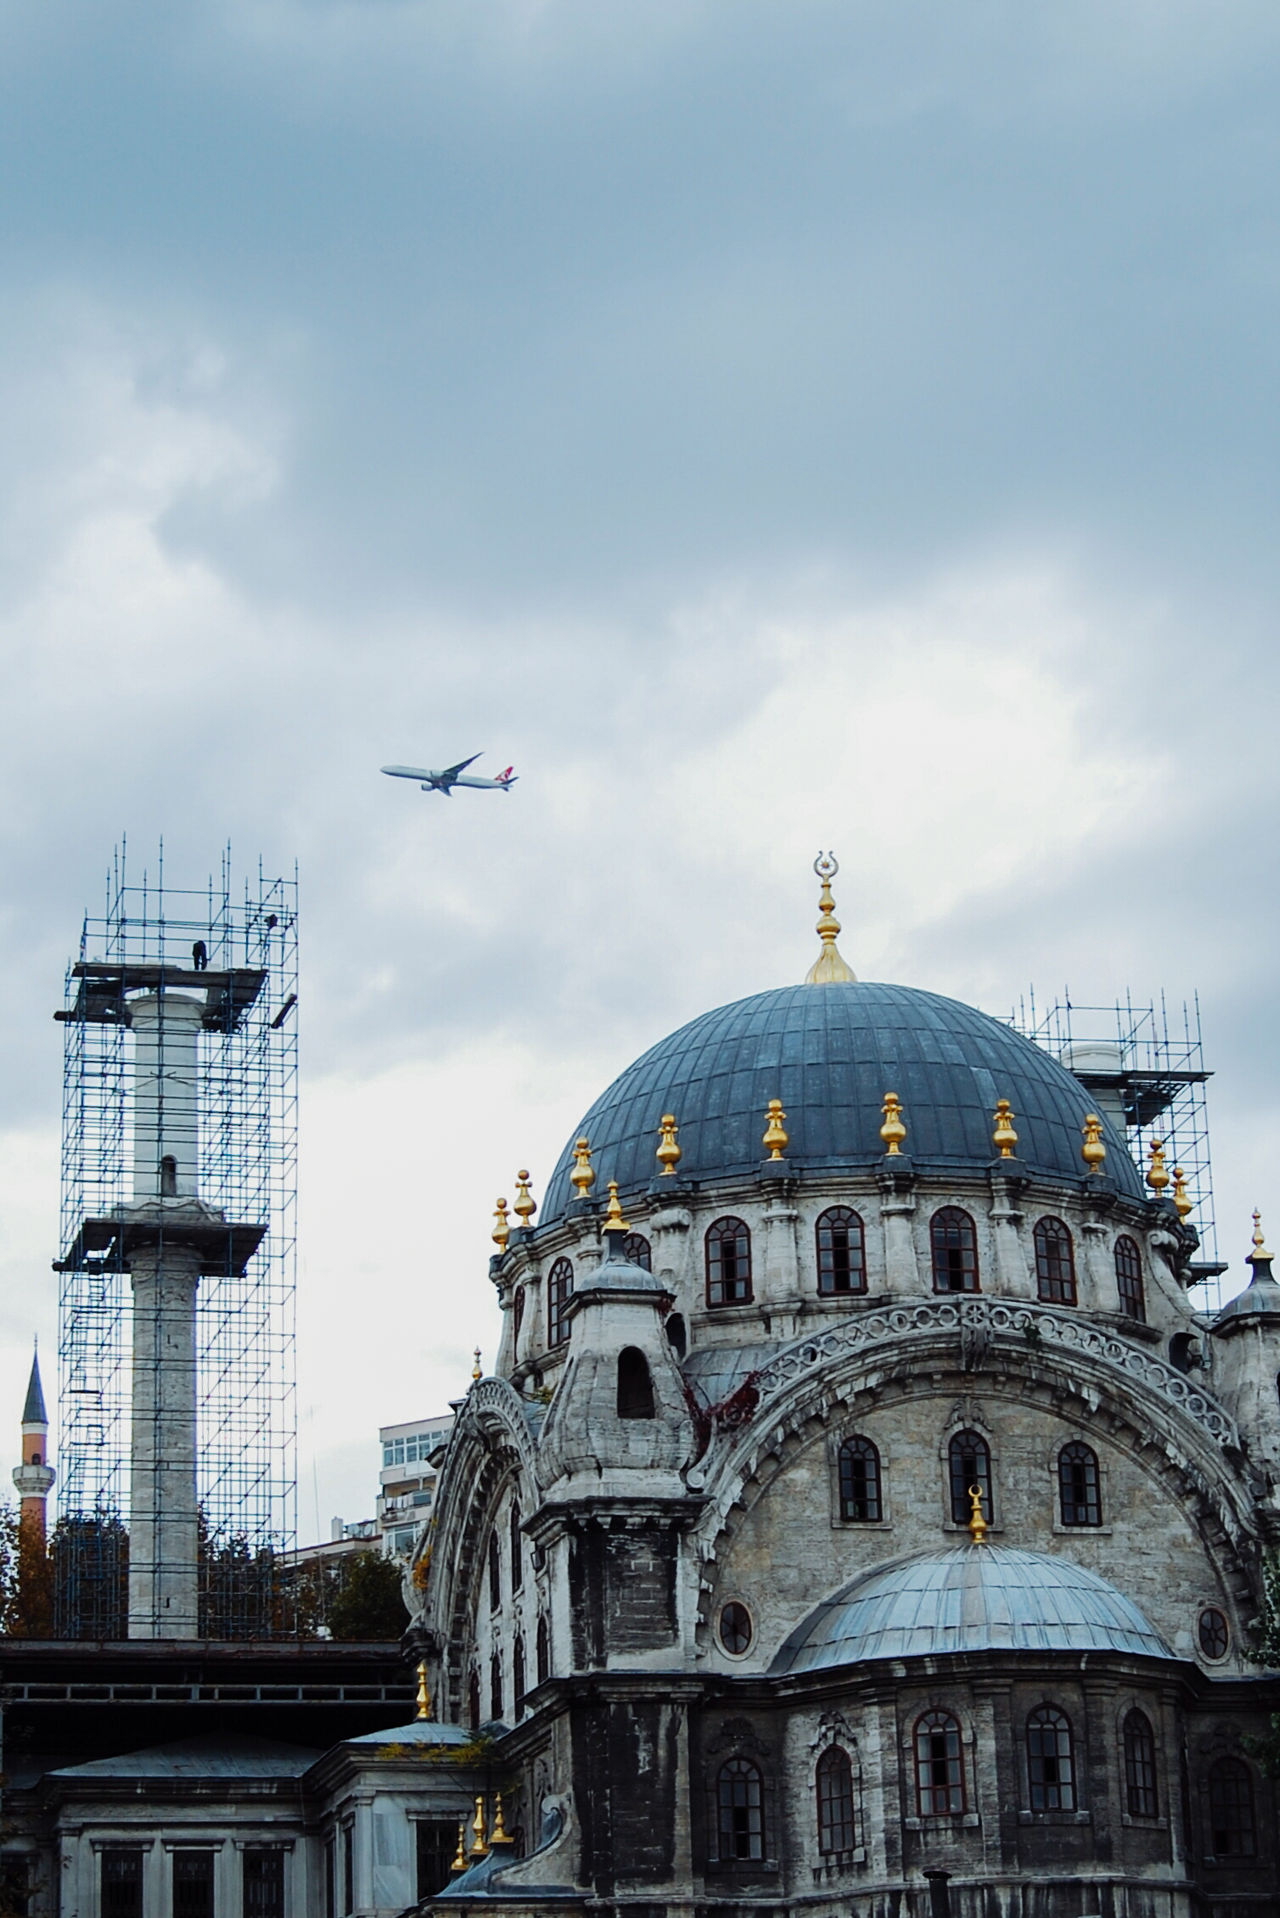 Low flying plane with mosque in foreground in Istanbul Architecture Building Exterior Built Structure City Cloud - Sky Day Dome Flying History Low Angle View Low Flying No People Outdoors Place Of Worship Plane Religion Sky Spirituality Travel Travel Destinations